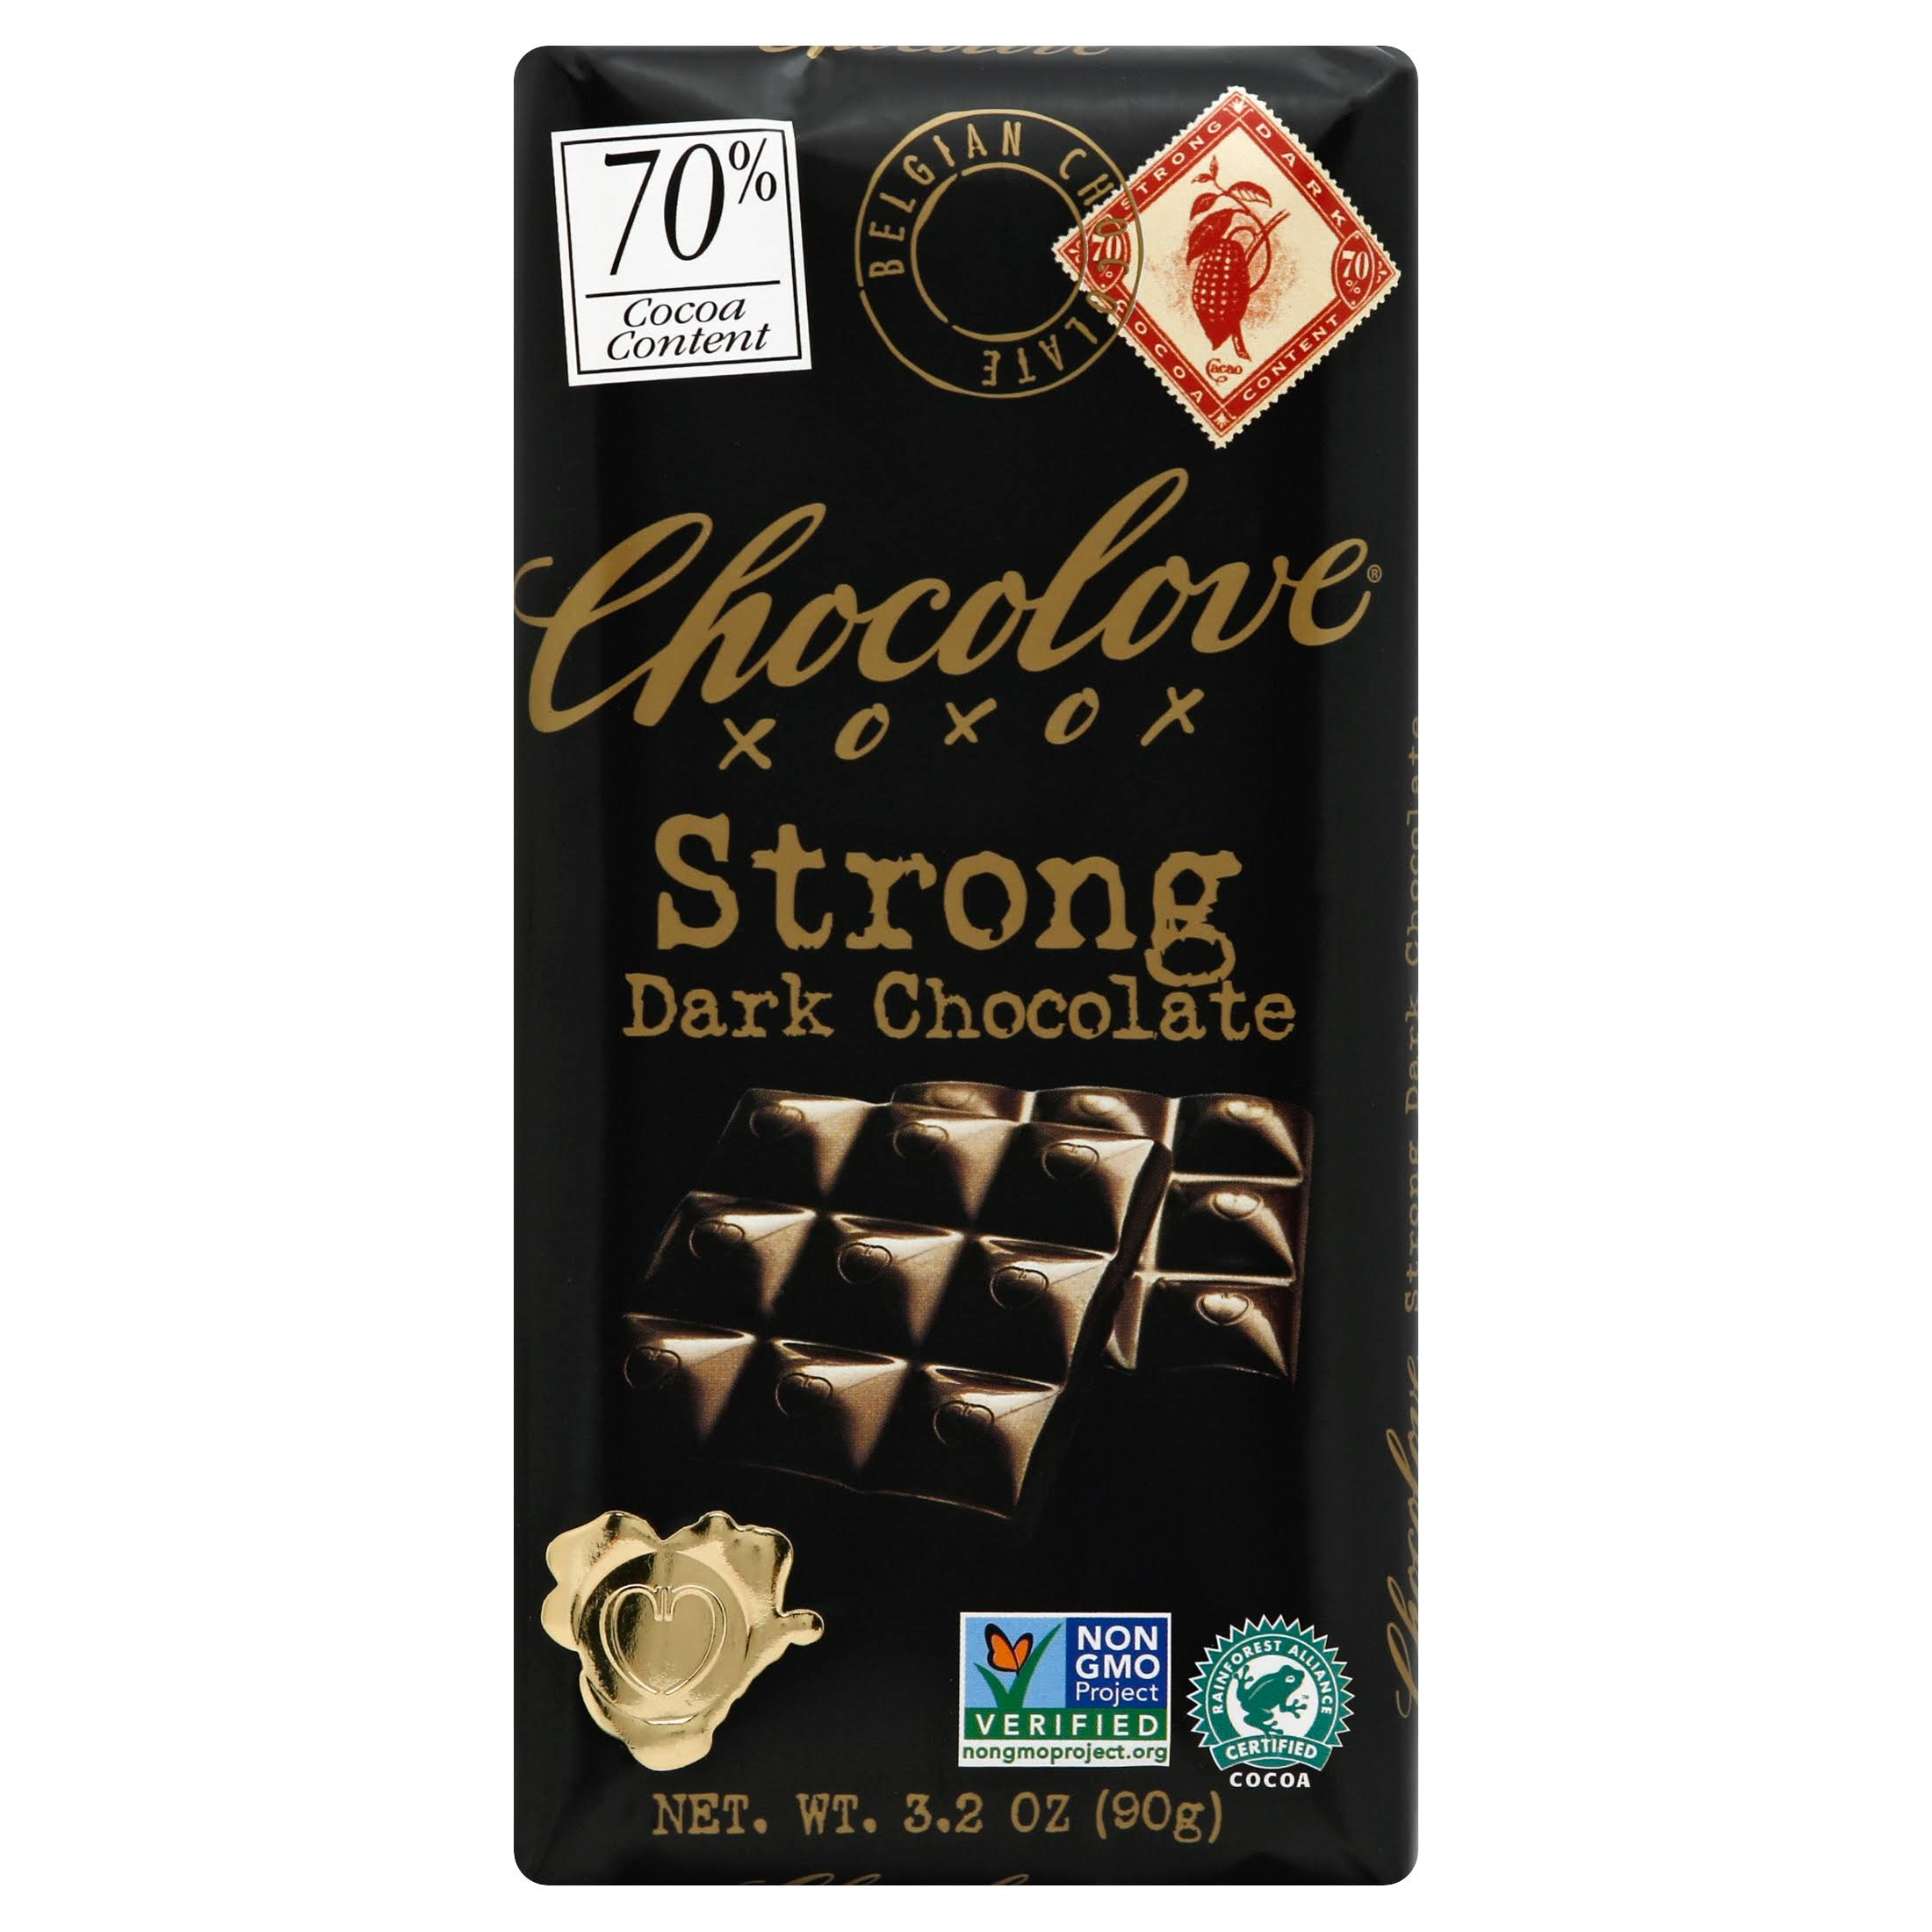 Chocolove Premium Chocolate Bars - Strong Dark Chocolate